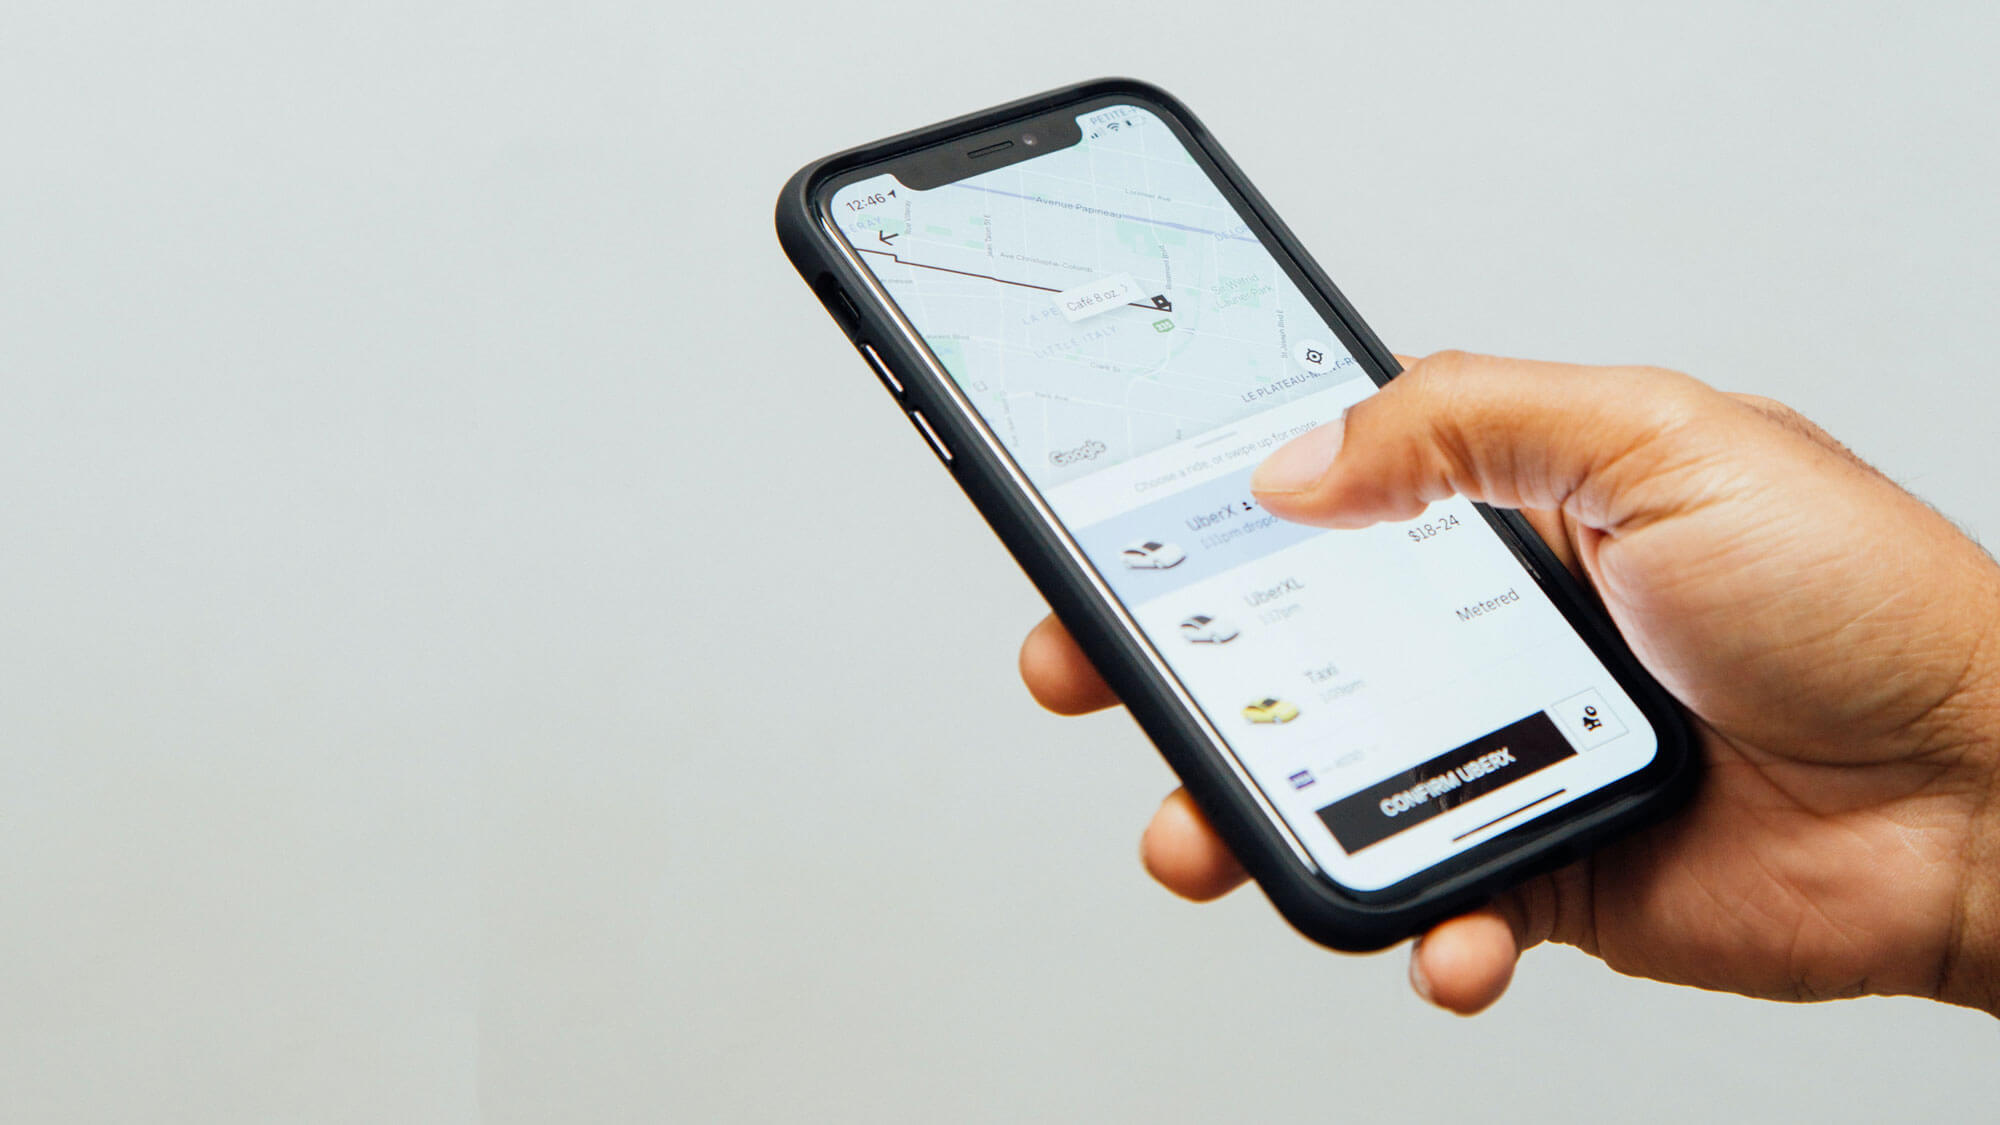 Uber is a great example of dynamic pricing and the importance of price transparency